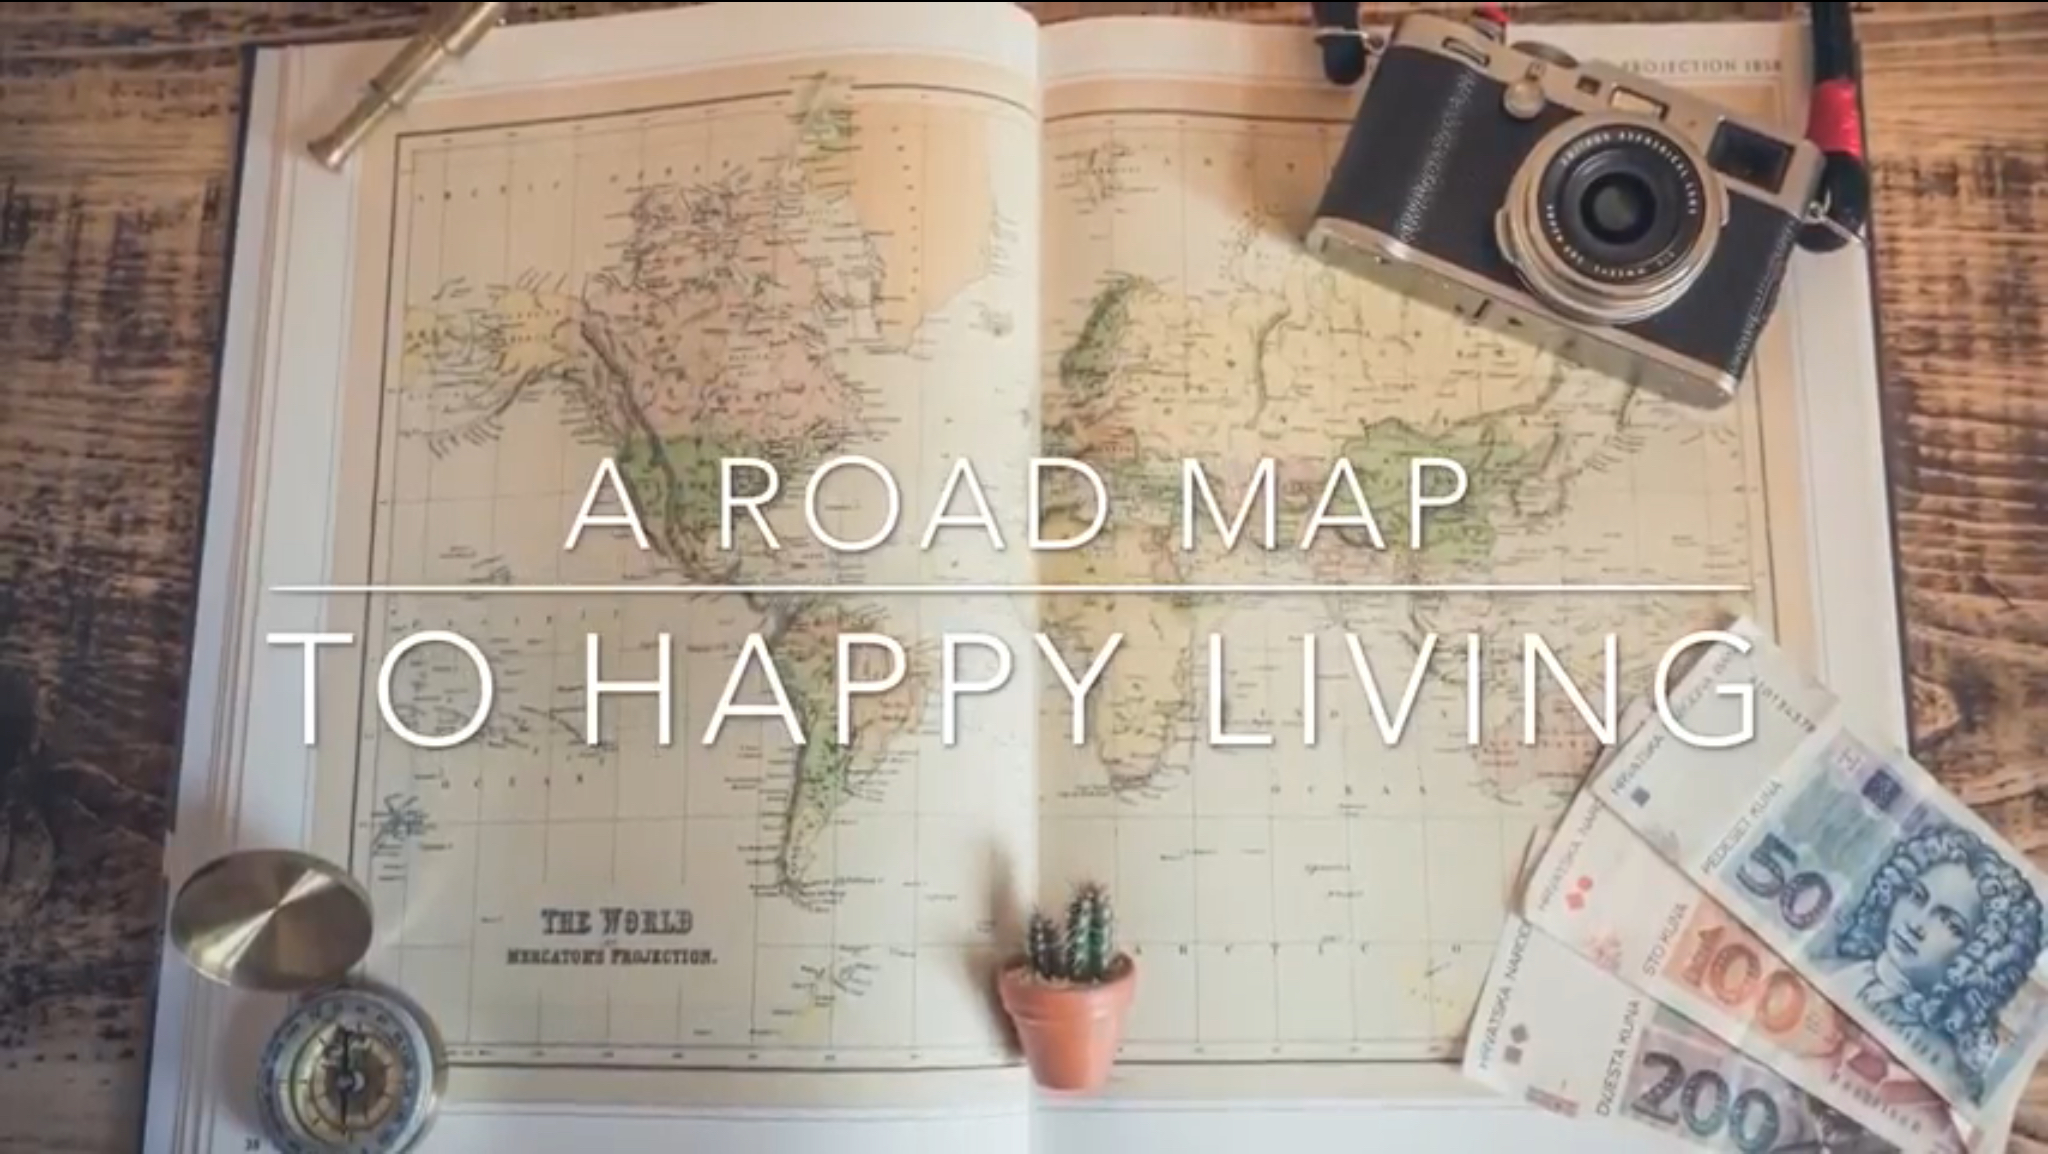 Road Map To Happy Living